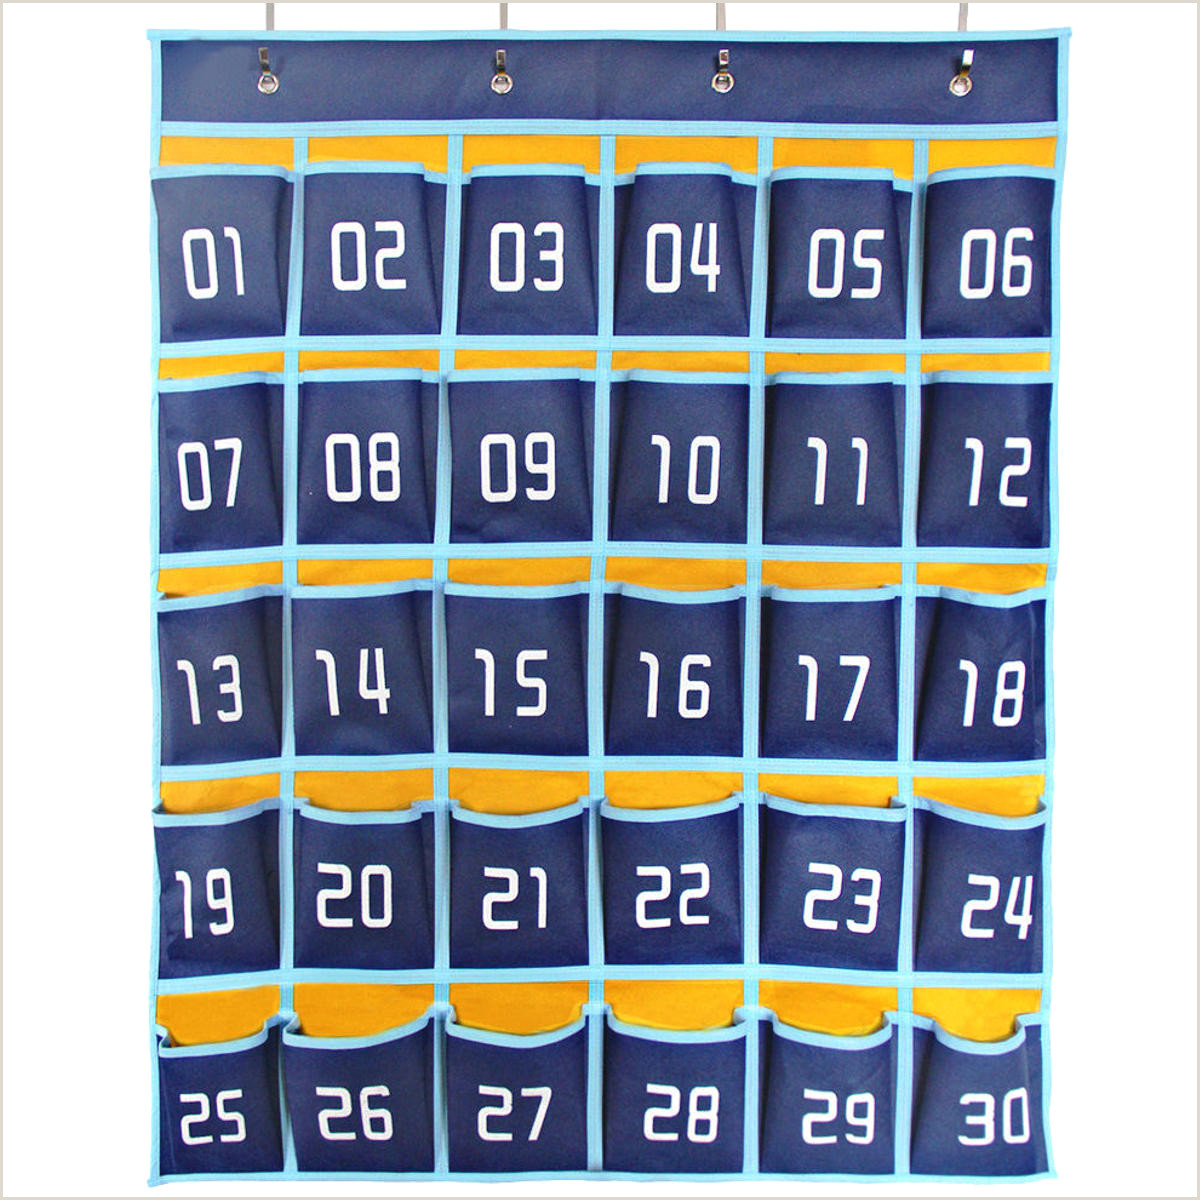 Business Cards With Classroom Hanging Organizer 30 Pockets Cell Phones Storage Bag Business Cards Wall Mount Bag